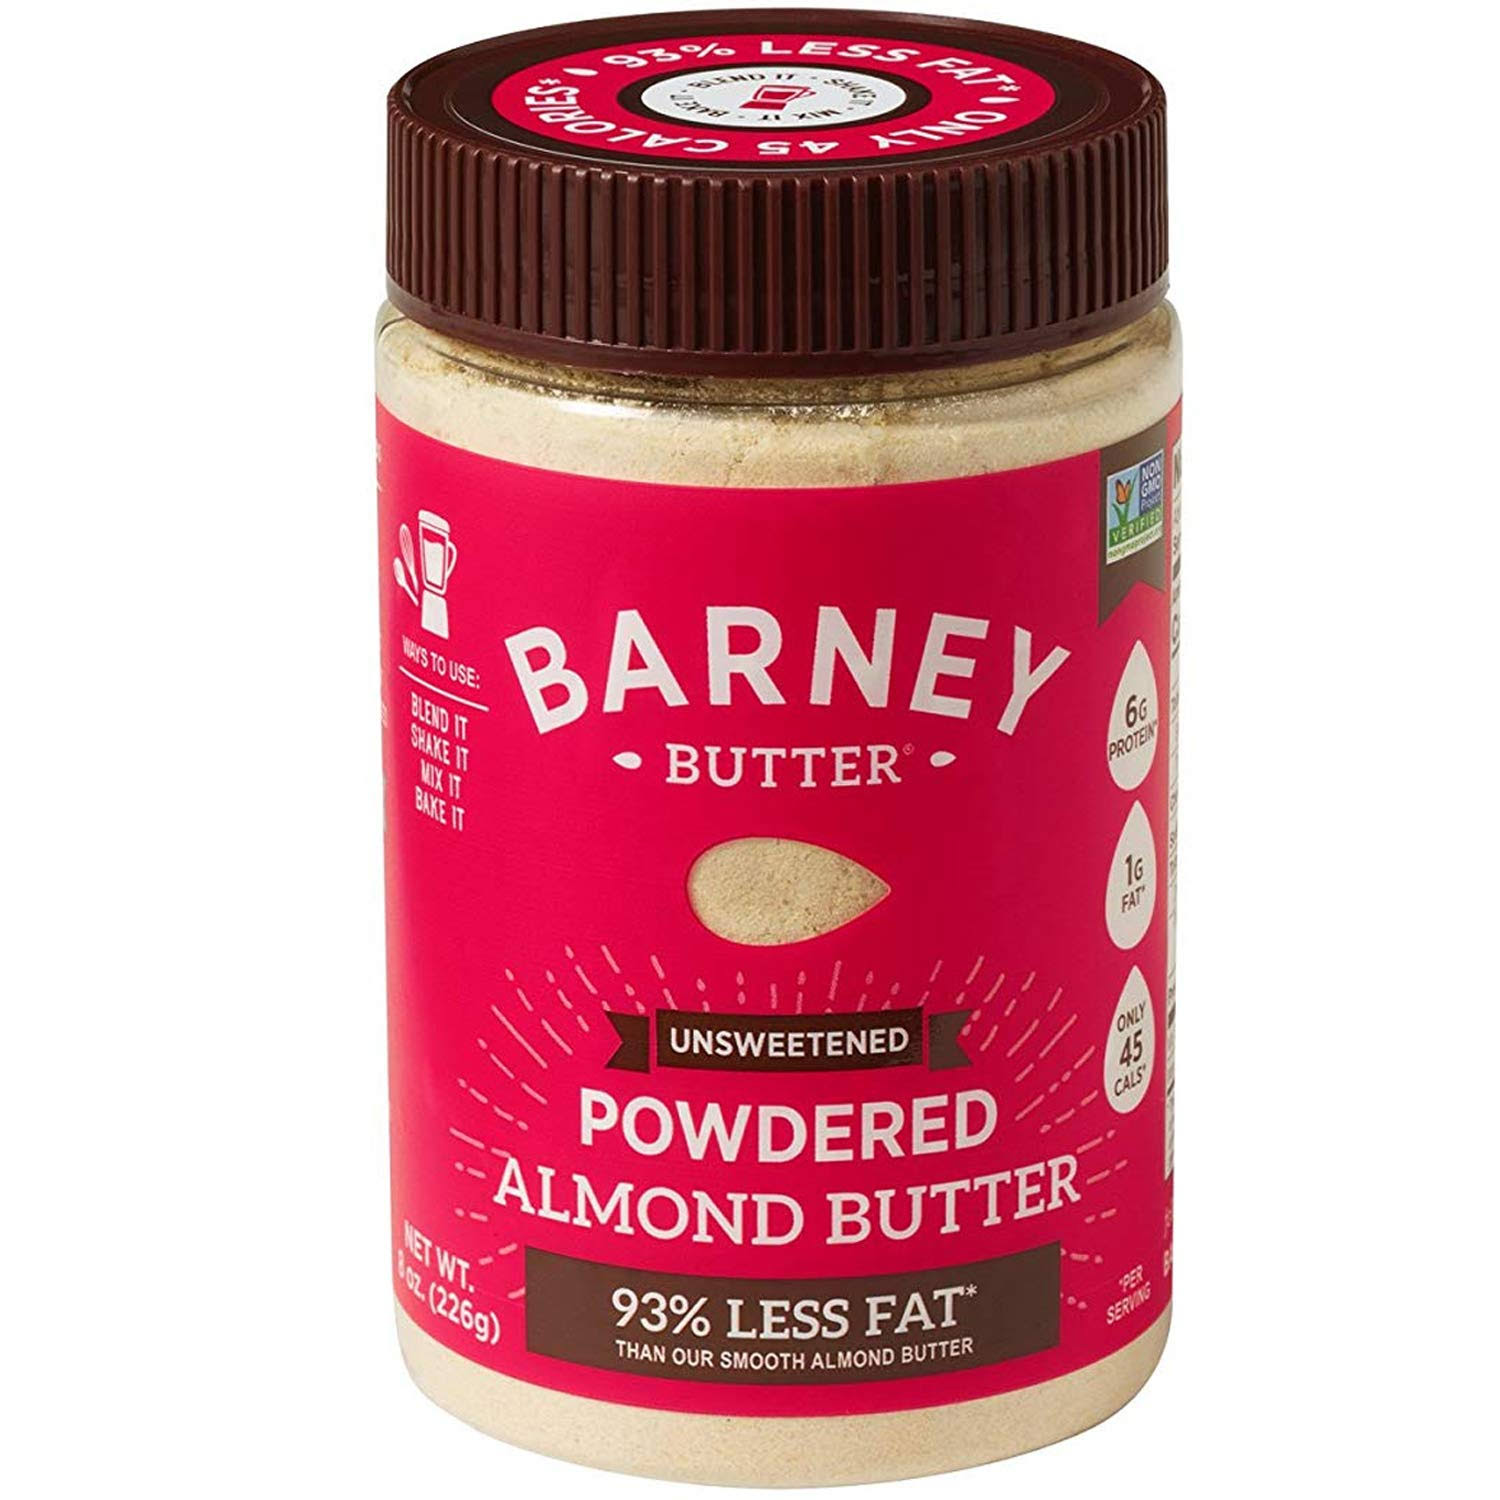 Barney Almond Butter, Unsweetened, Powdered - 8 oz